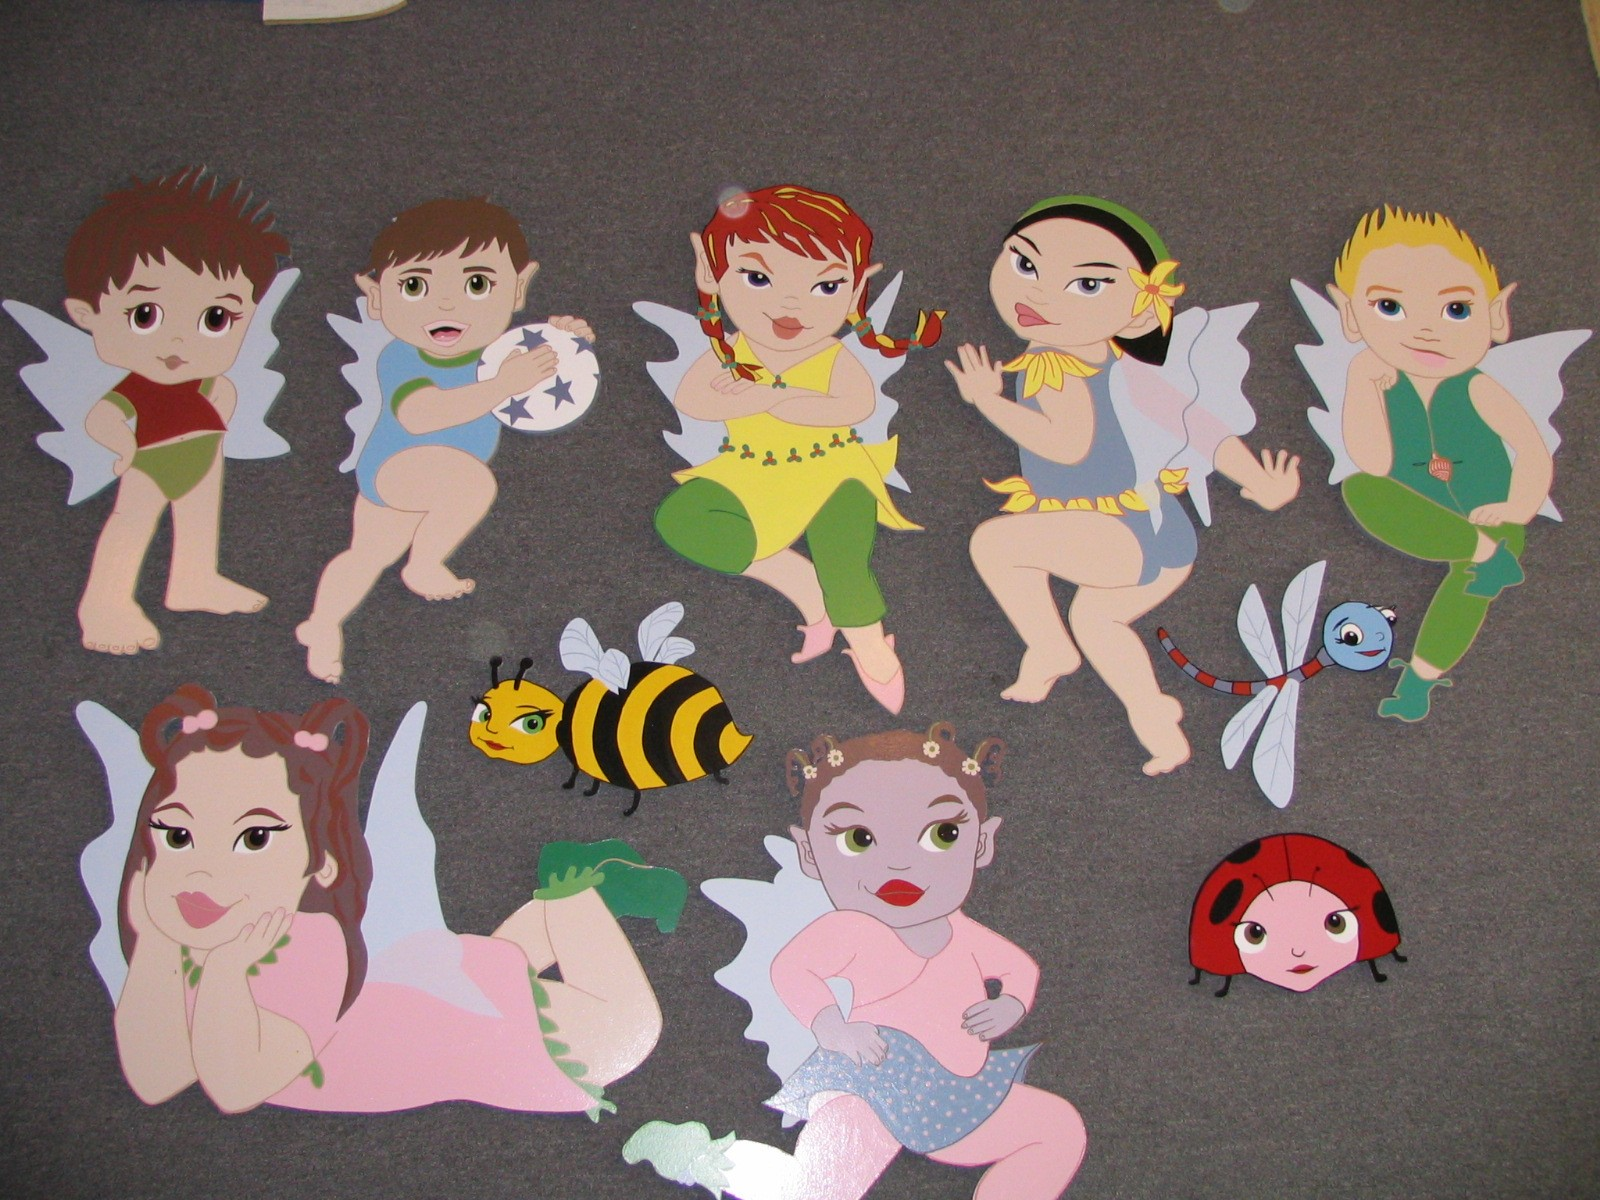 CHARACTERS FOR KIDS - HANDPAINTED BY PAUL MAXWELL GODFREY